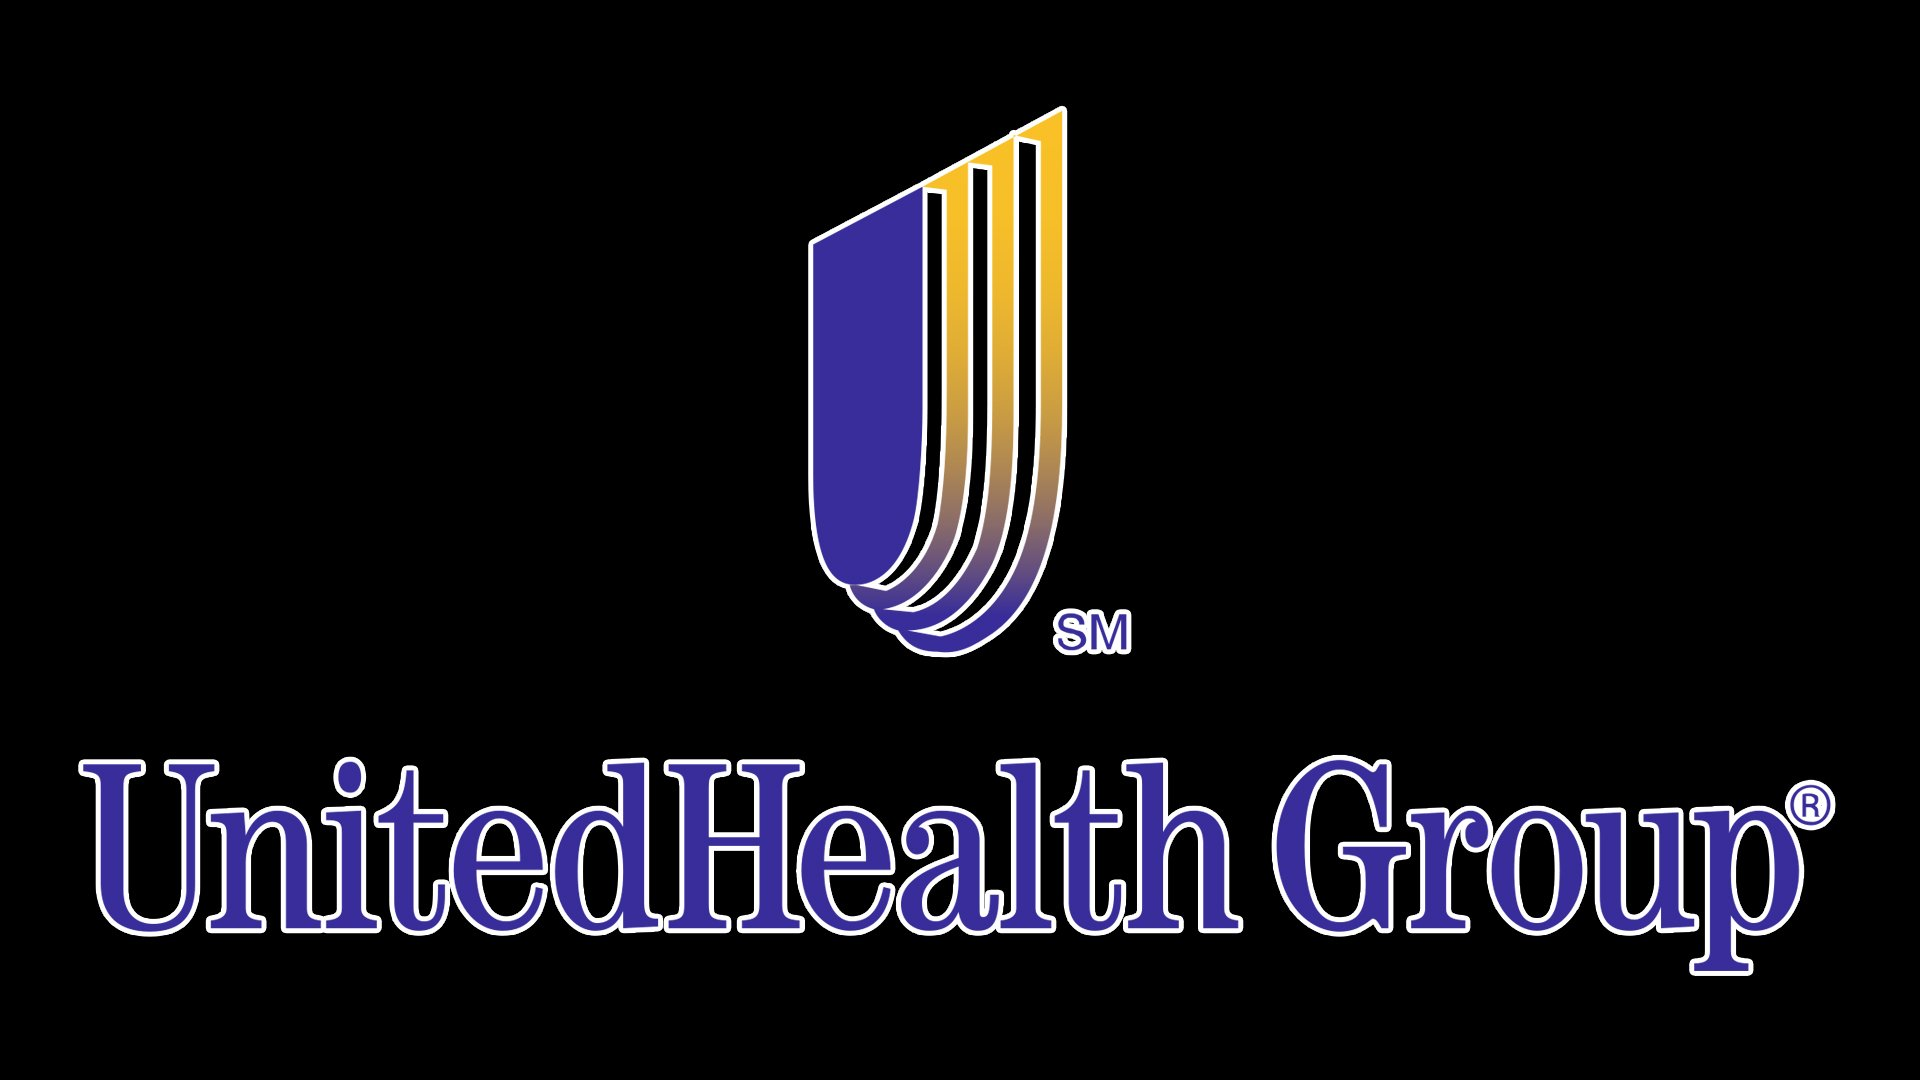 united healthcare logo united healthcare symbol meaning